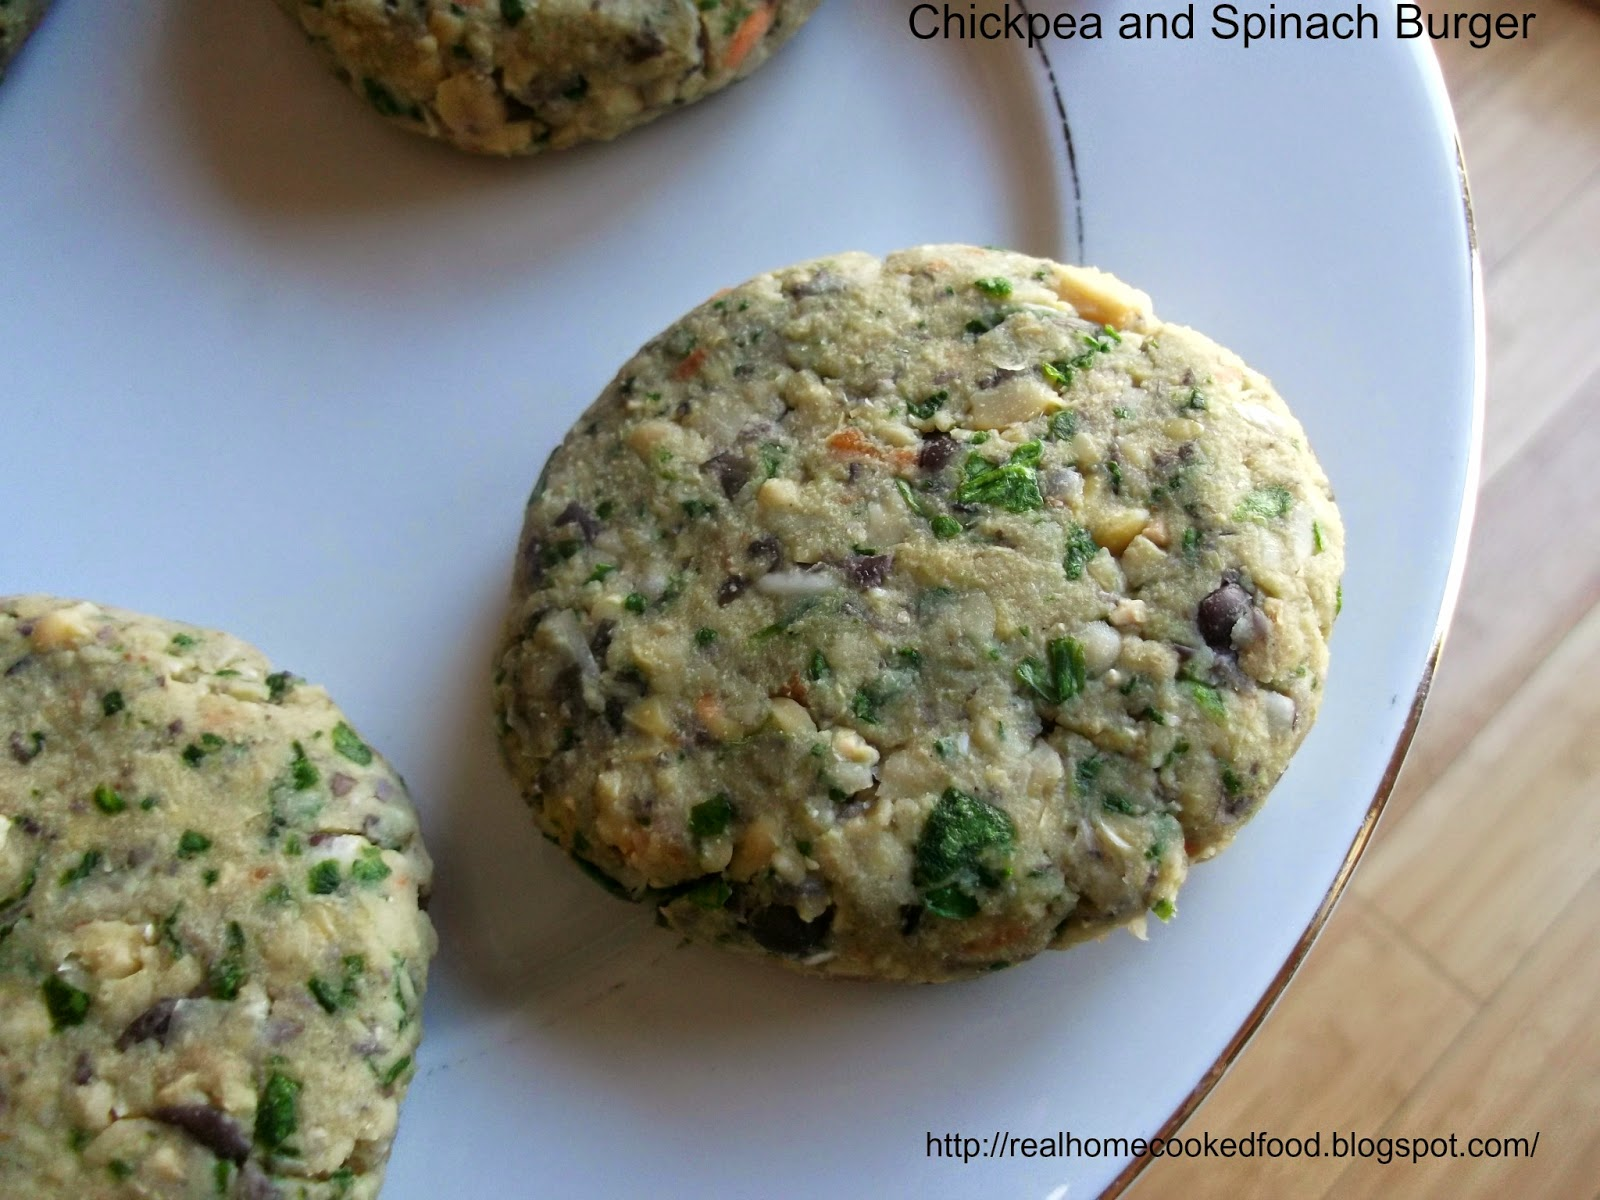 HCF: Chickpea and Spinach Burger